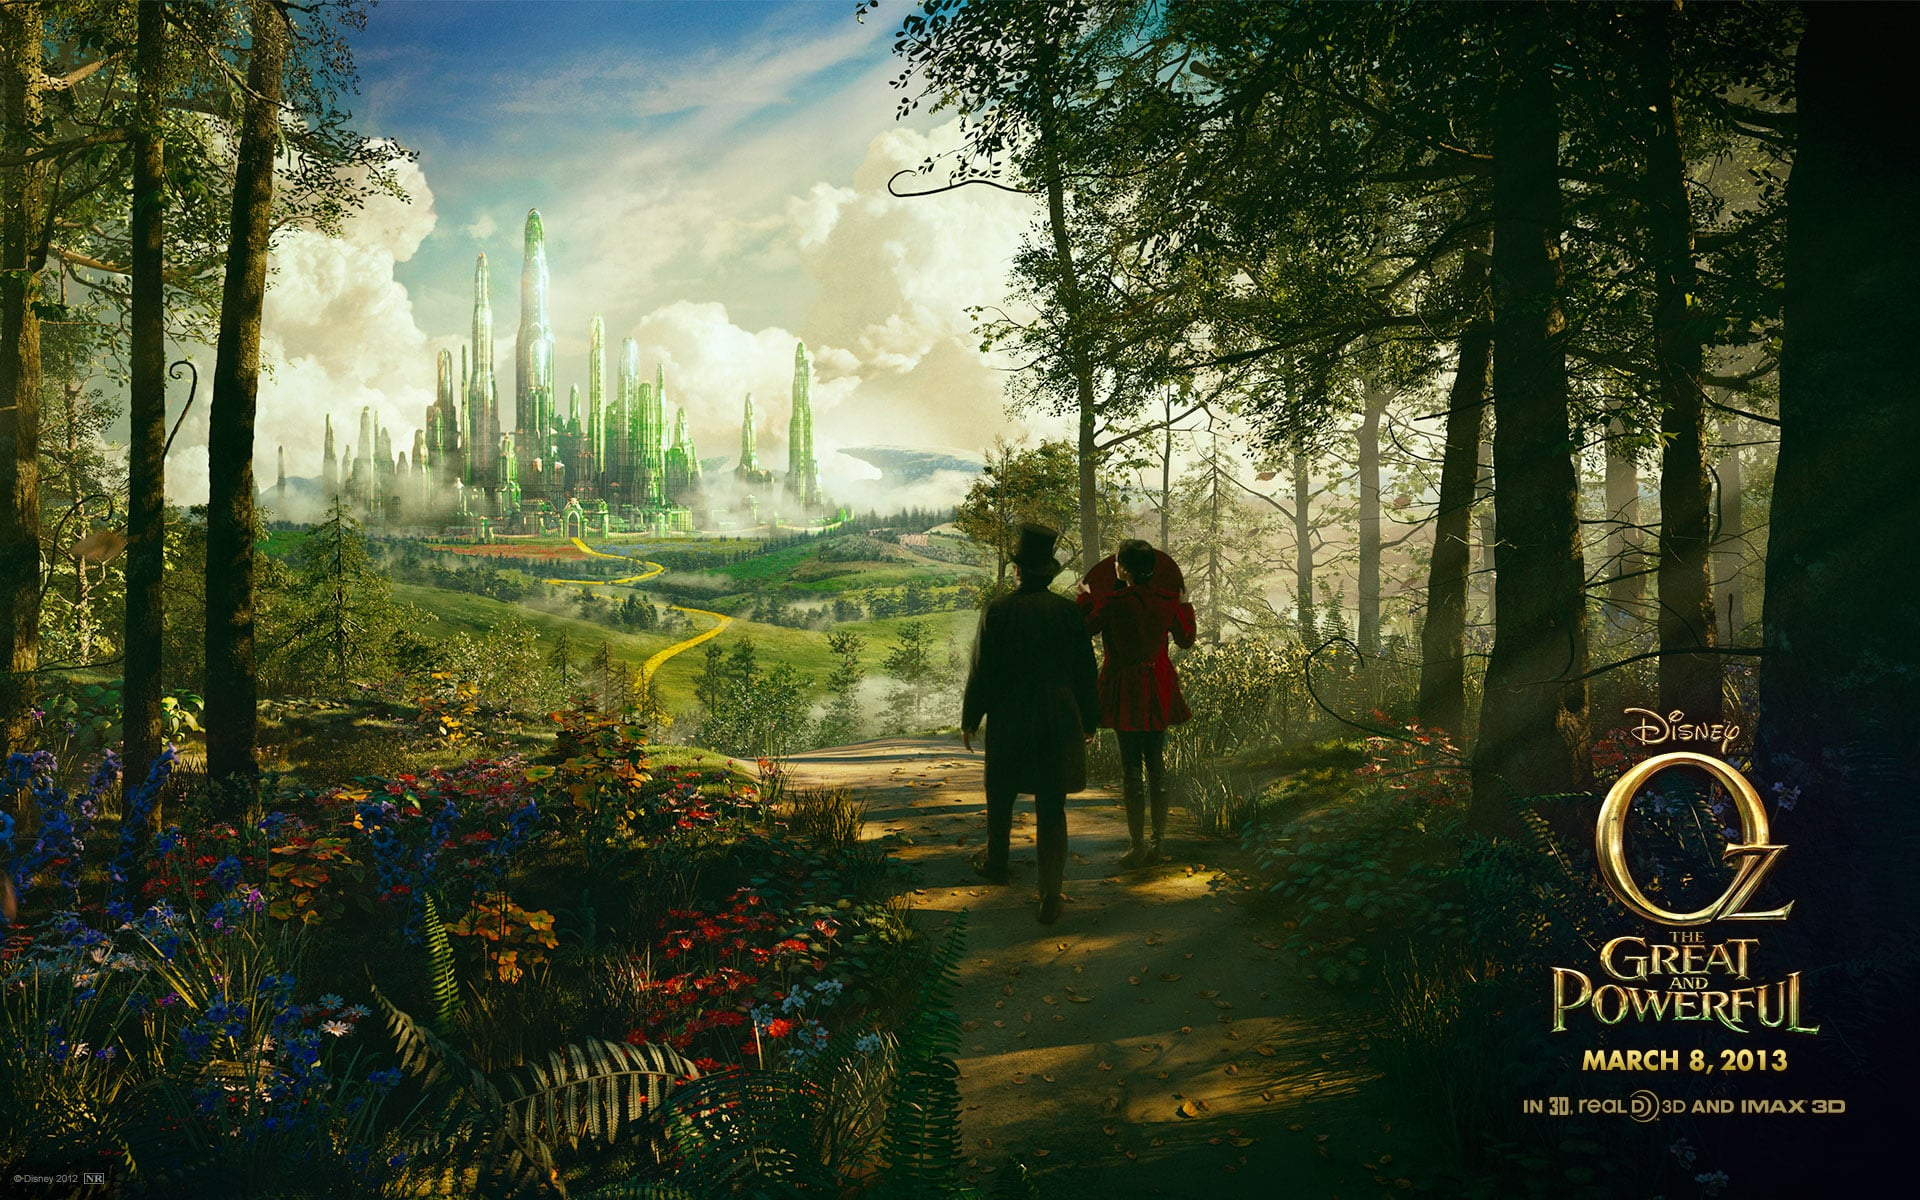 Oz the Great and Powerful / Disney